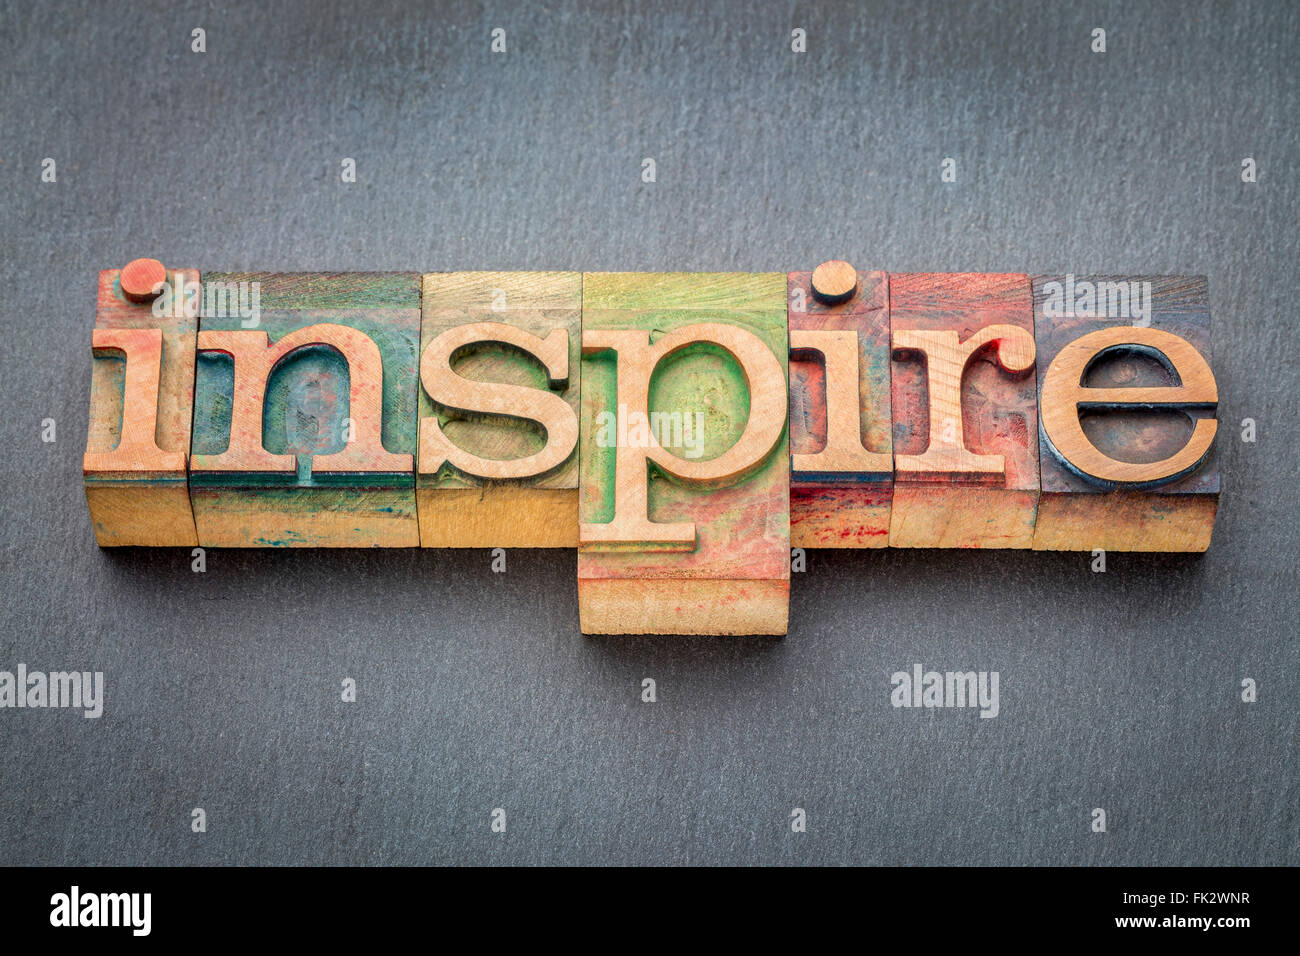 Inspire Word In Letterpress Wood Type Printing Blocks Stained By